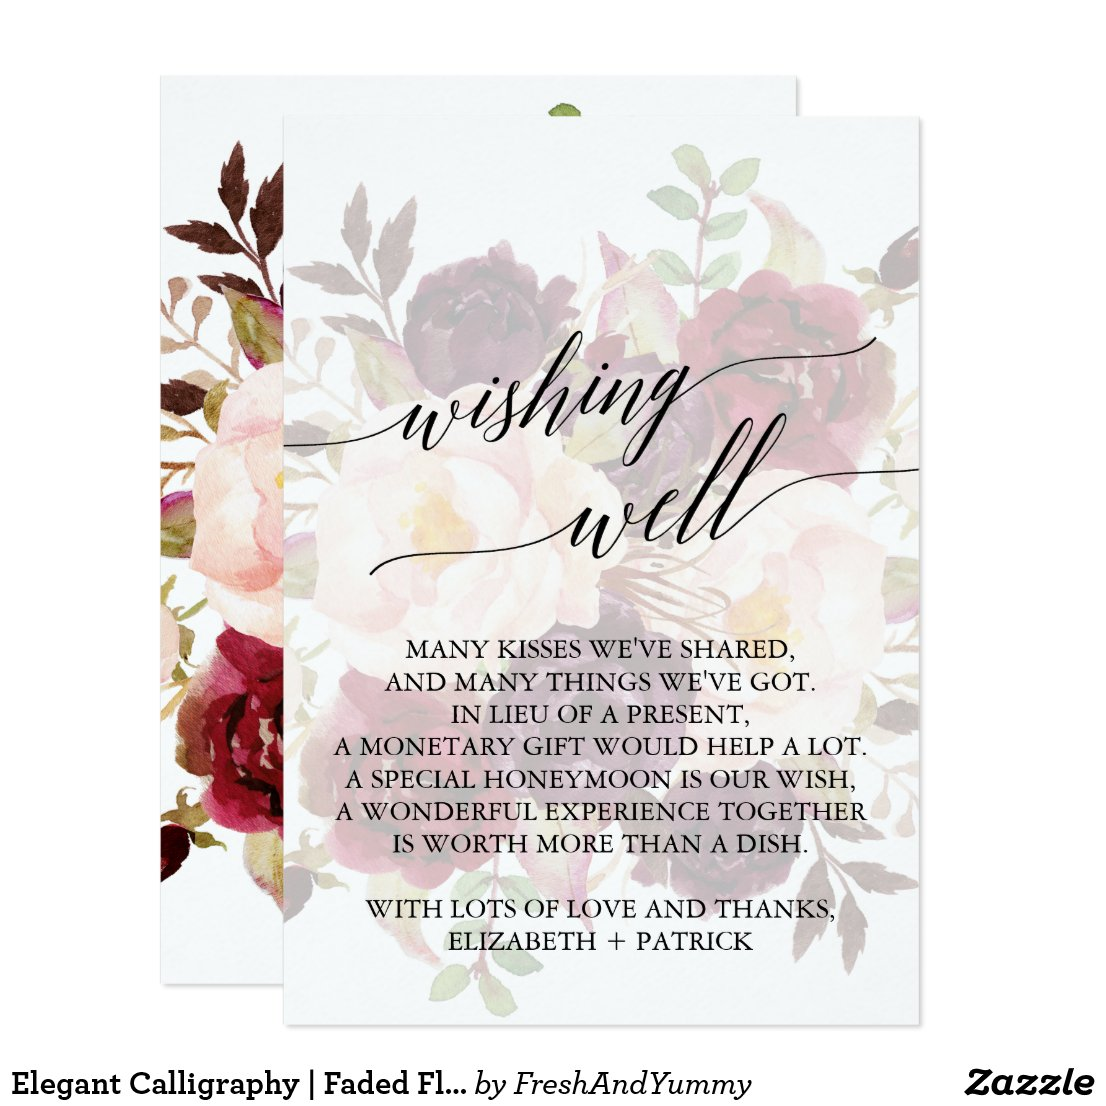 Elegant Calligraphy | Faded Floral Wishing Well Card